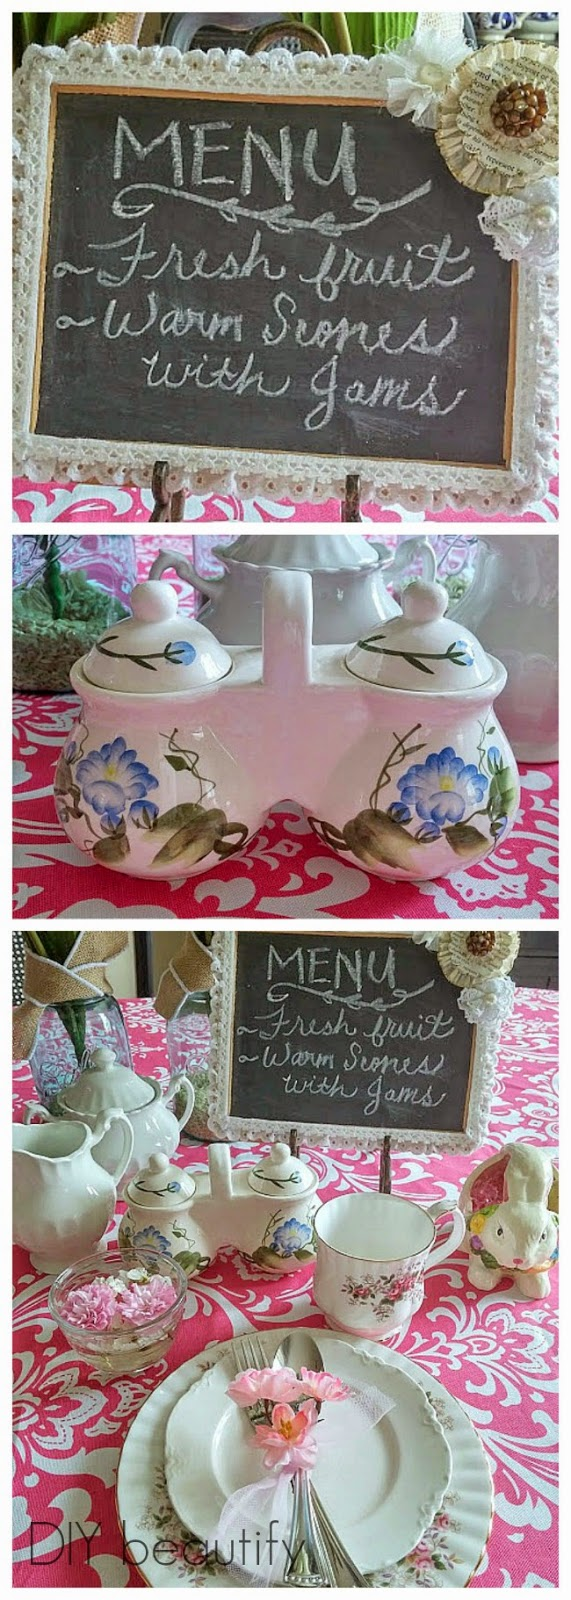 Easter breakfast table setting www.diybeautify.com